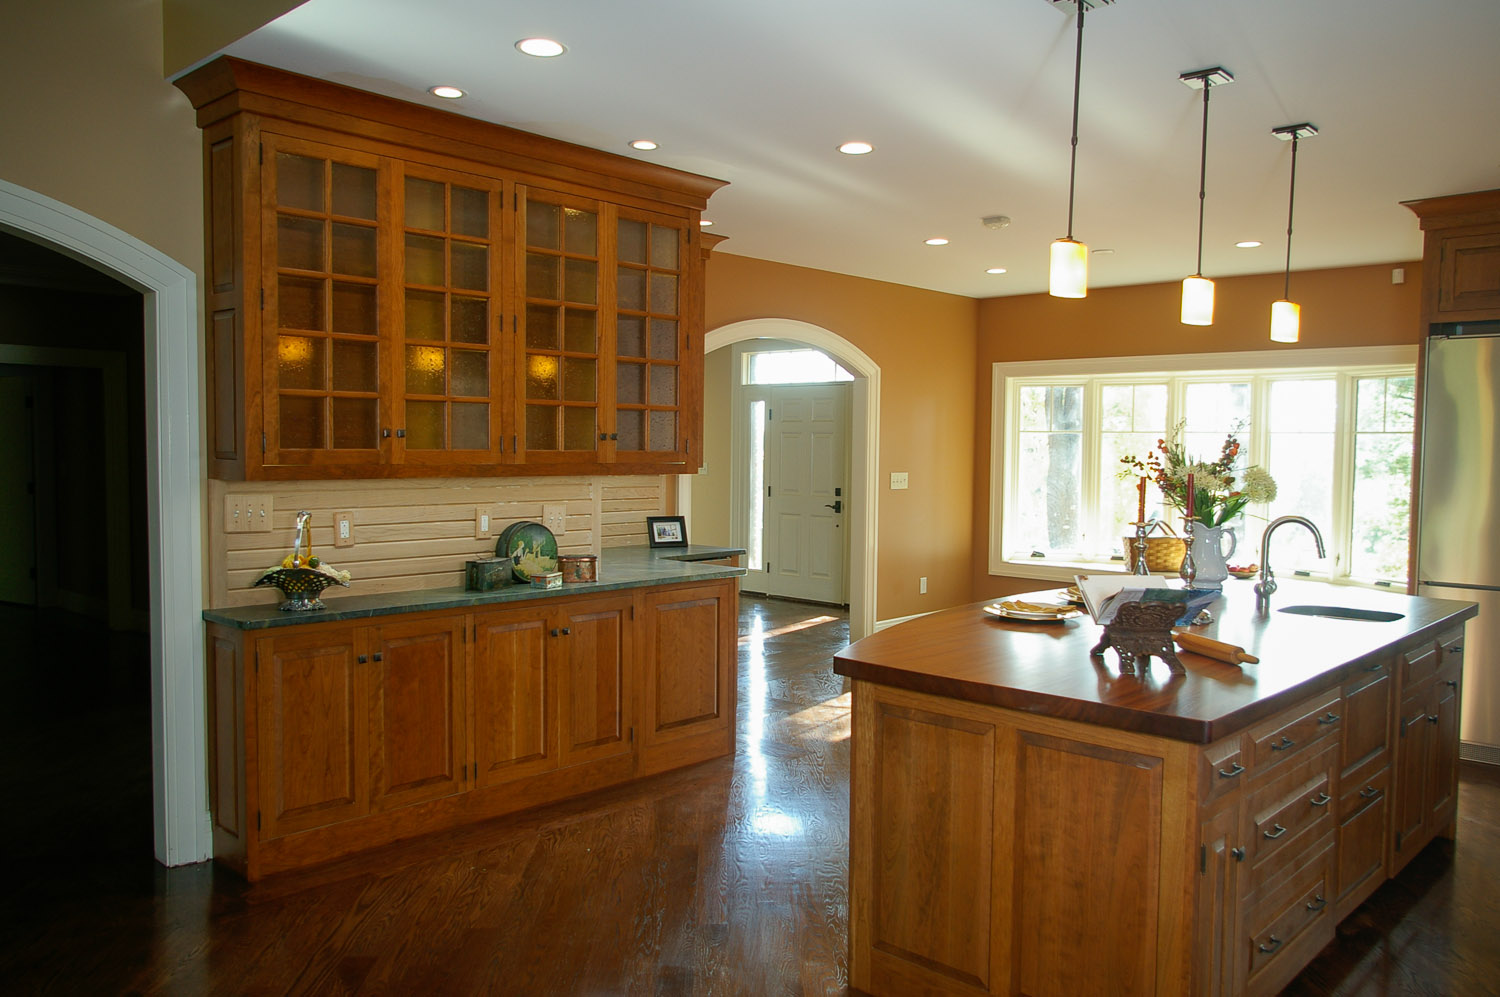 Quality matters when choosing kitchen cabinets. Think of them as furniture used every day in a harsh, wet, hot environment.